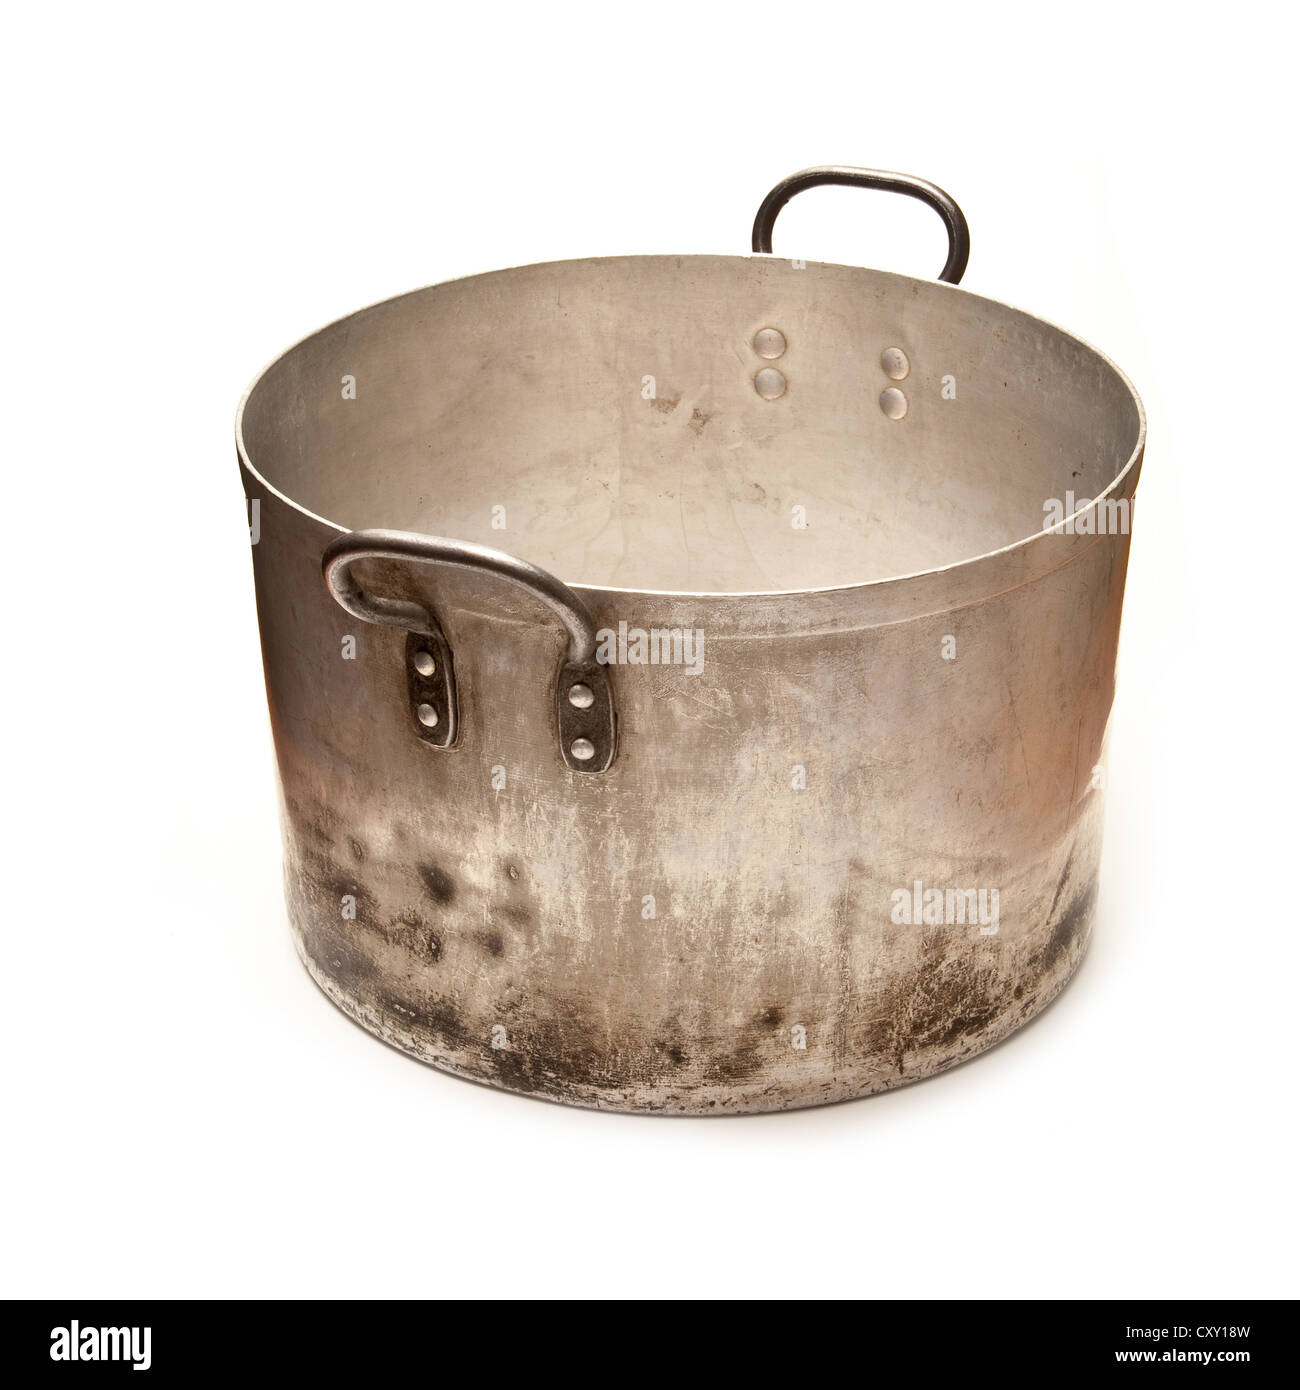 Large metal saucepan cooking pot isolated on a white studio background. - Stock Image